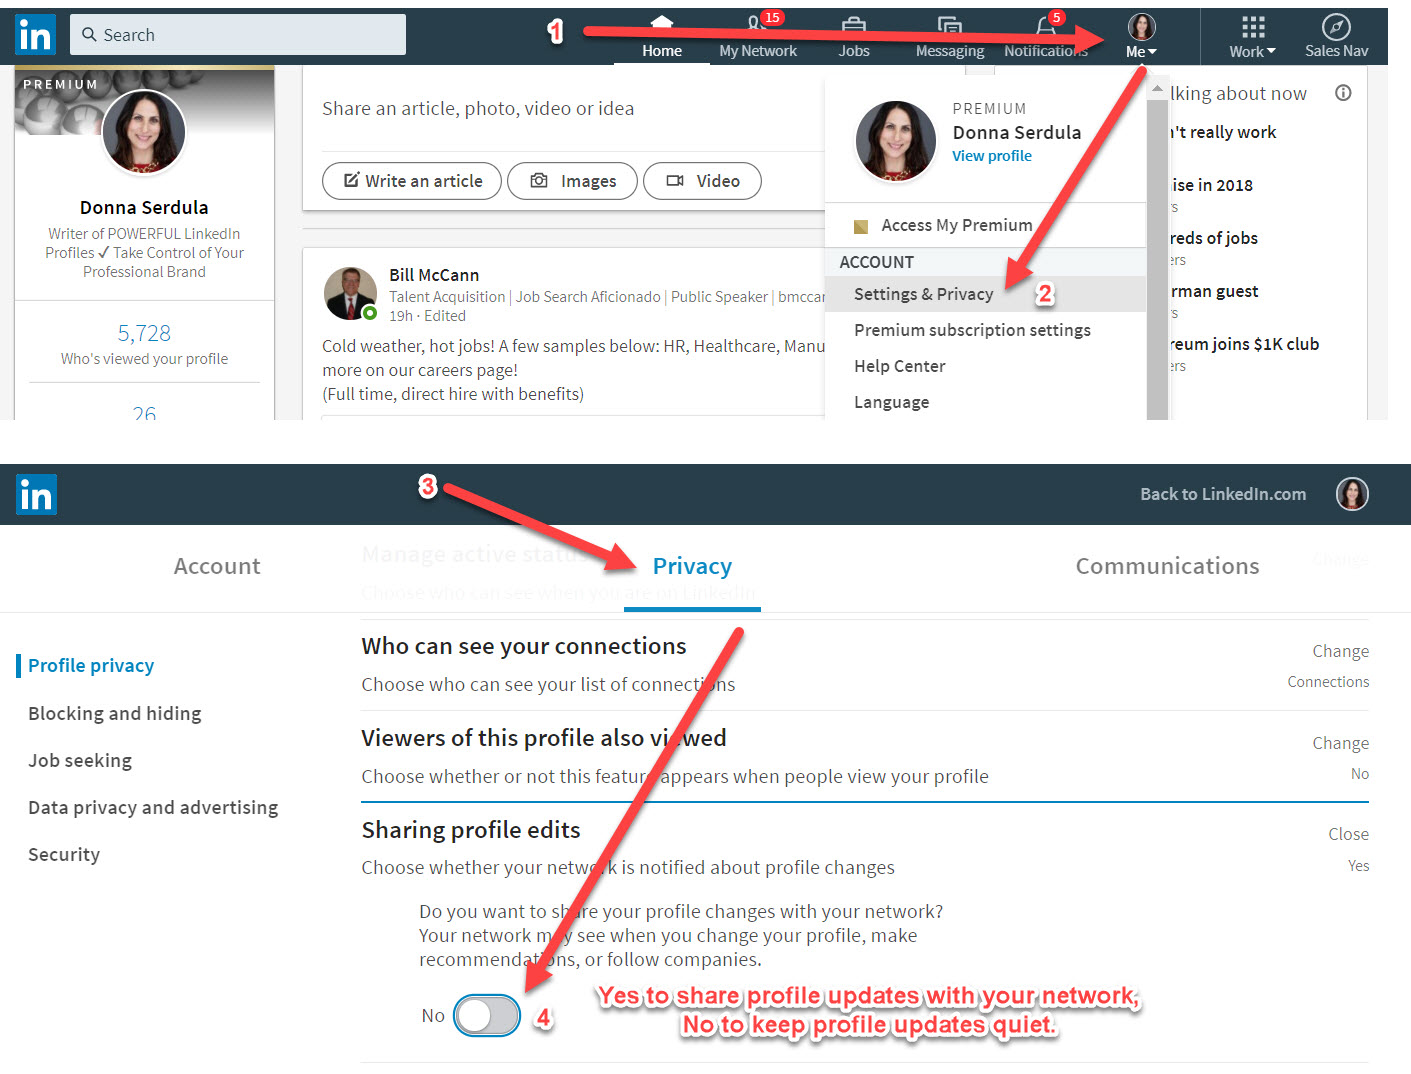 How to Keep Your LinkedIn Profile Edits a Secret From Your Network